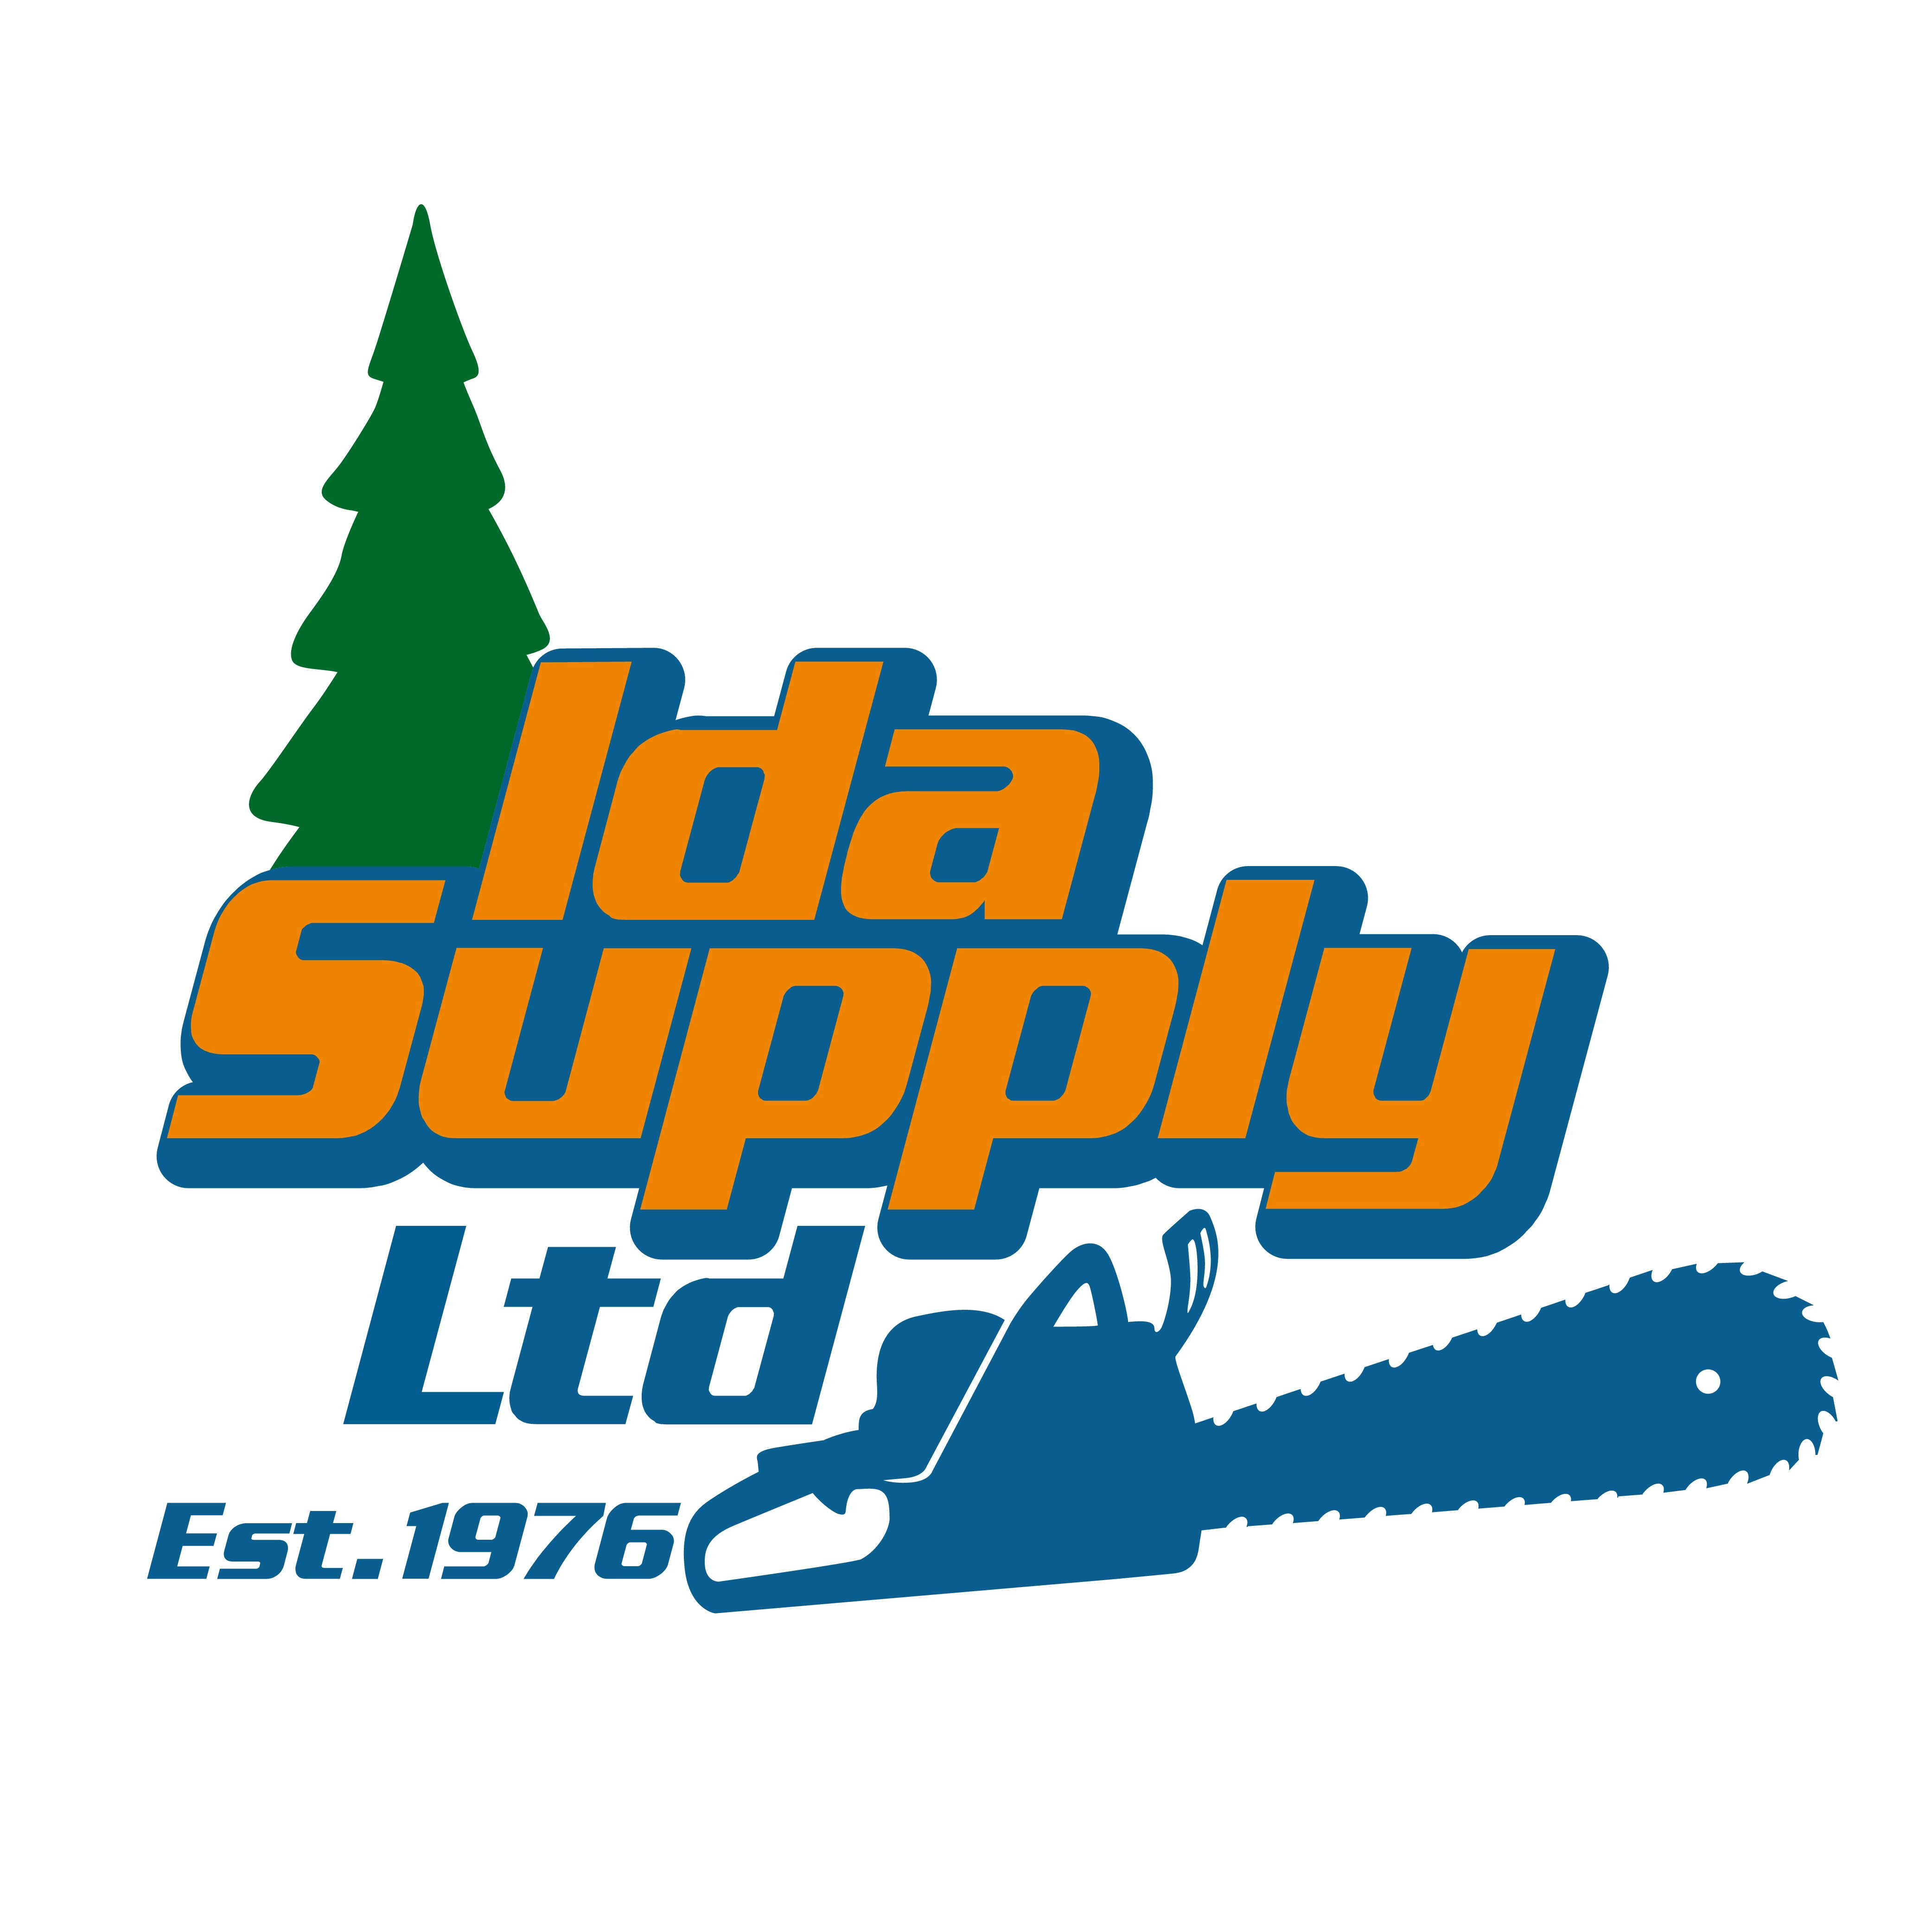 40-year old Outdoor Power Equipment retailer needs a powerful logo